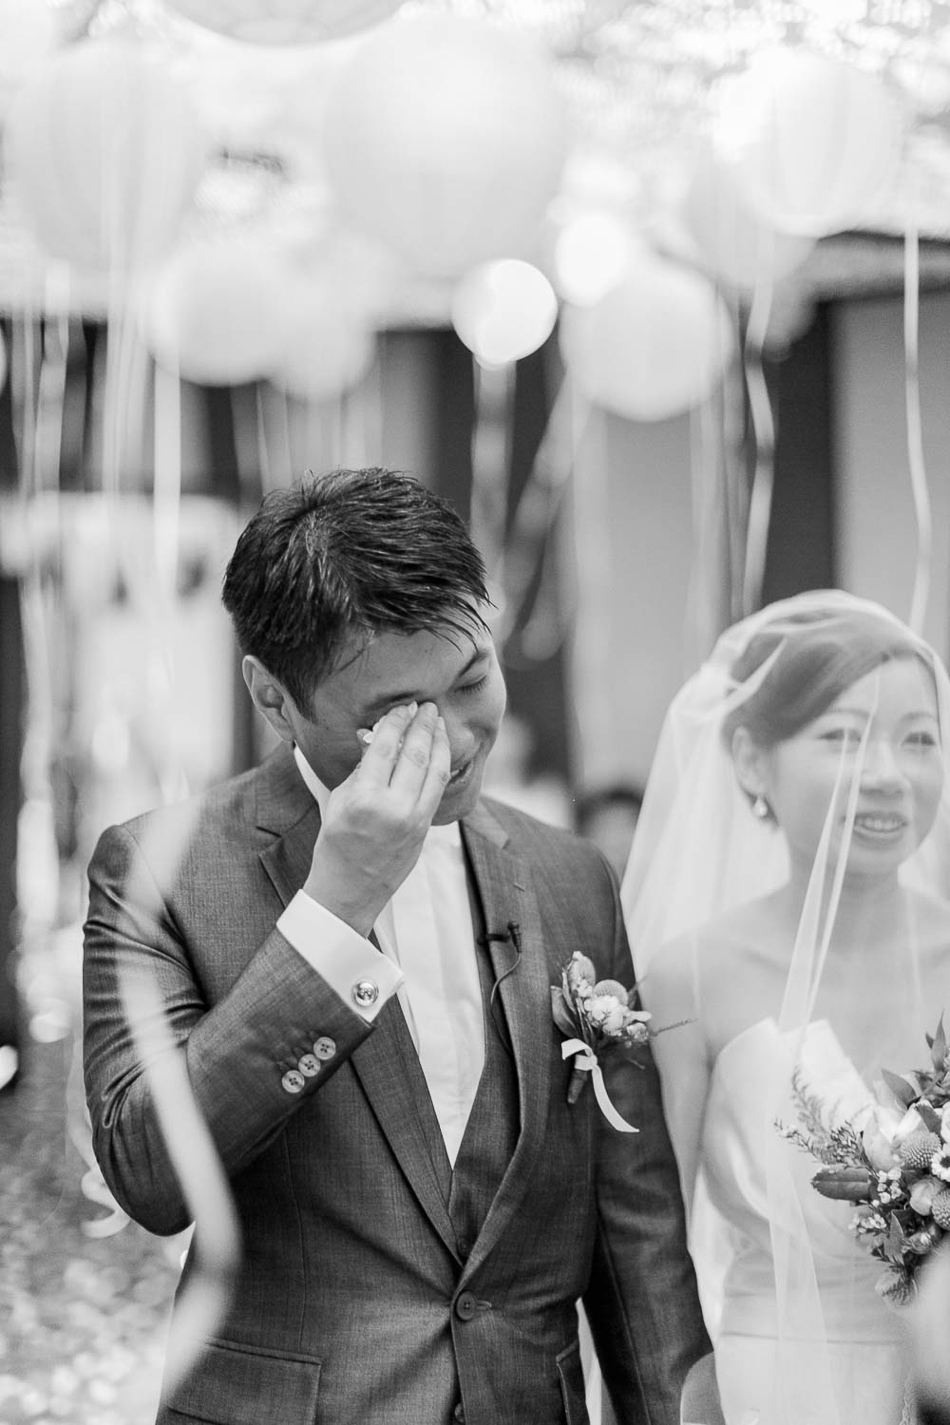 wedding-photographer-singapore-film-photographer-chen-sands-MinKang-wedding-CSPBLOG-2.jpg